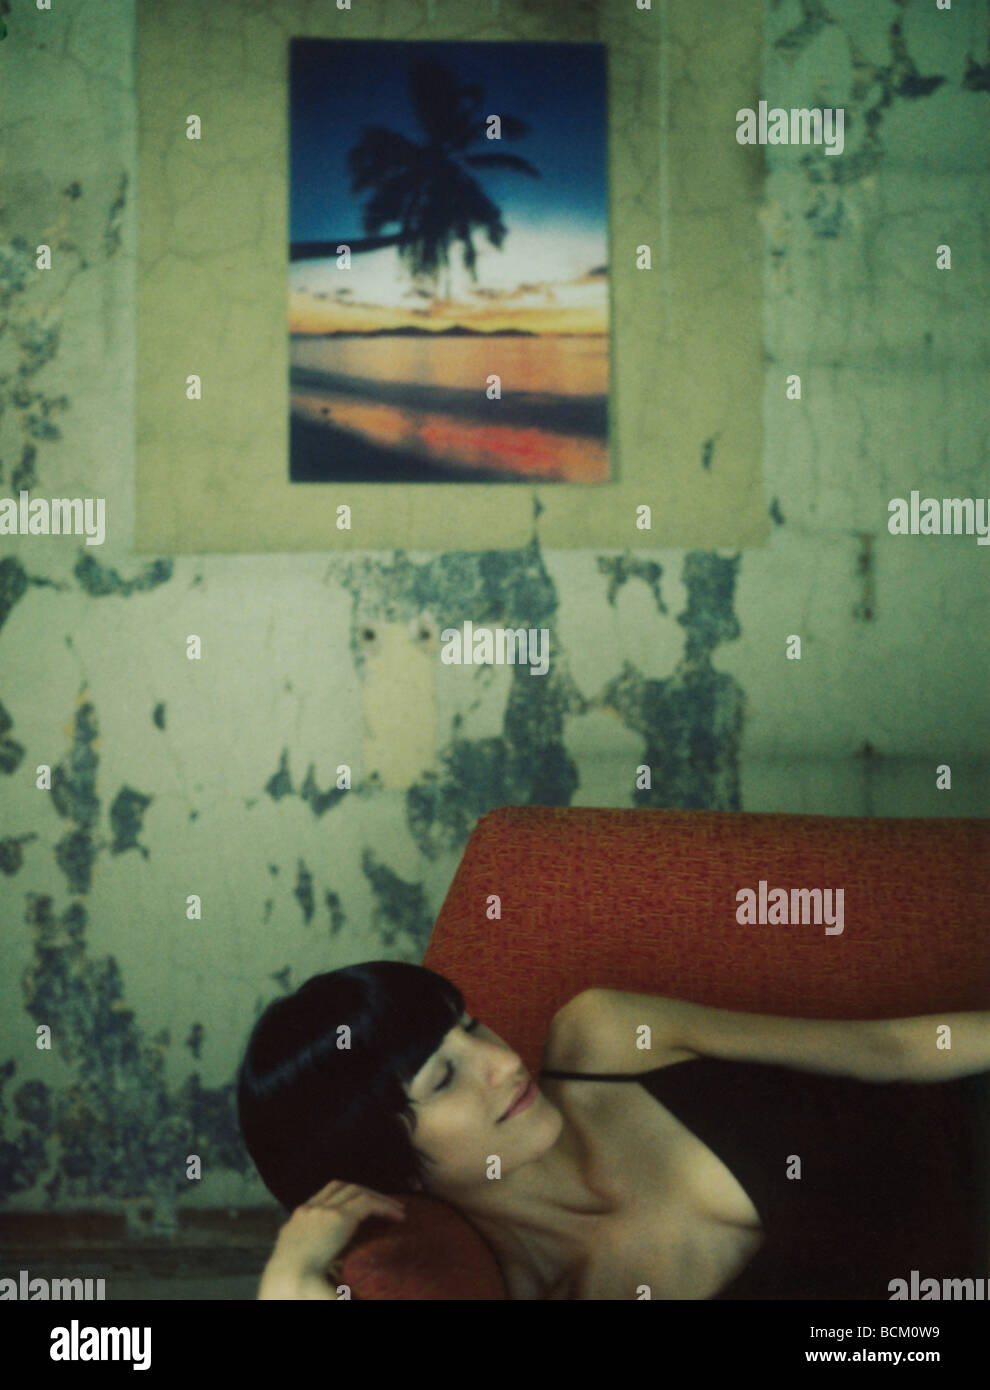 Woman lying on sofa with eyes closed, smiling, color photo on wall in background - Stock Image